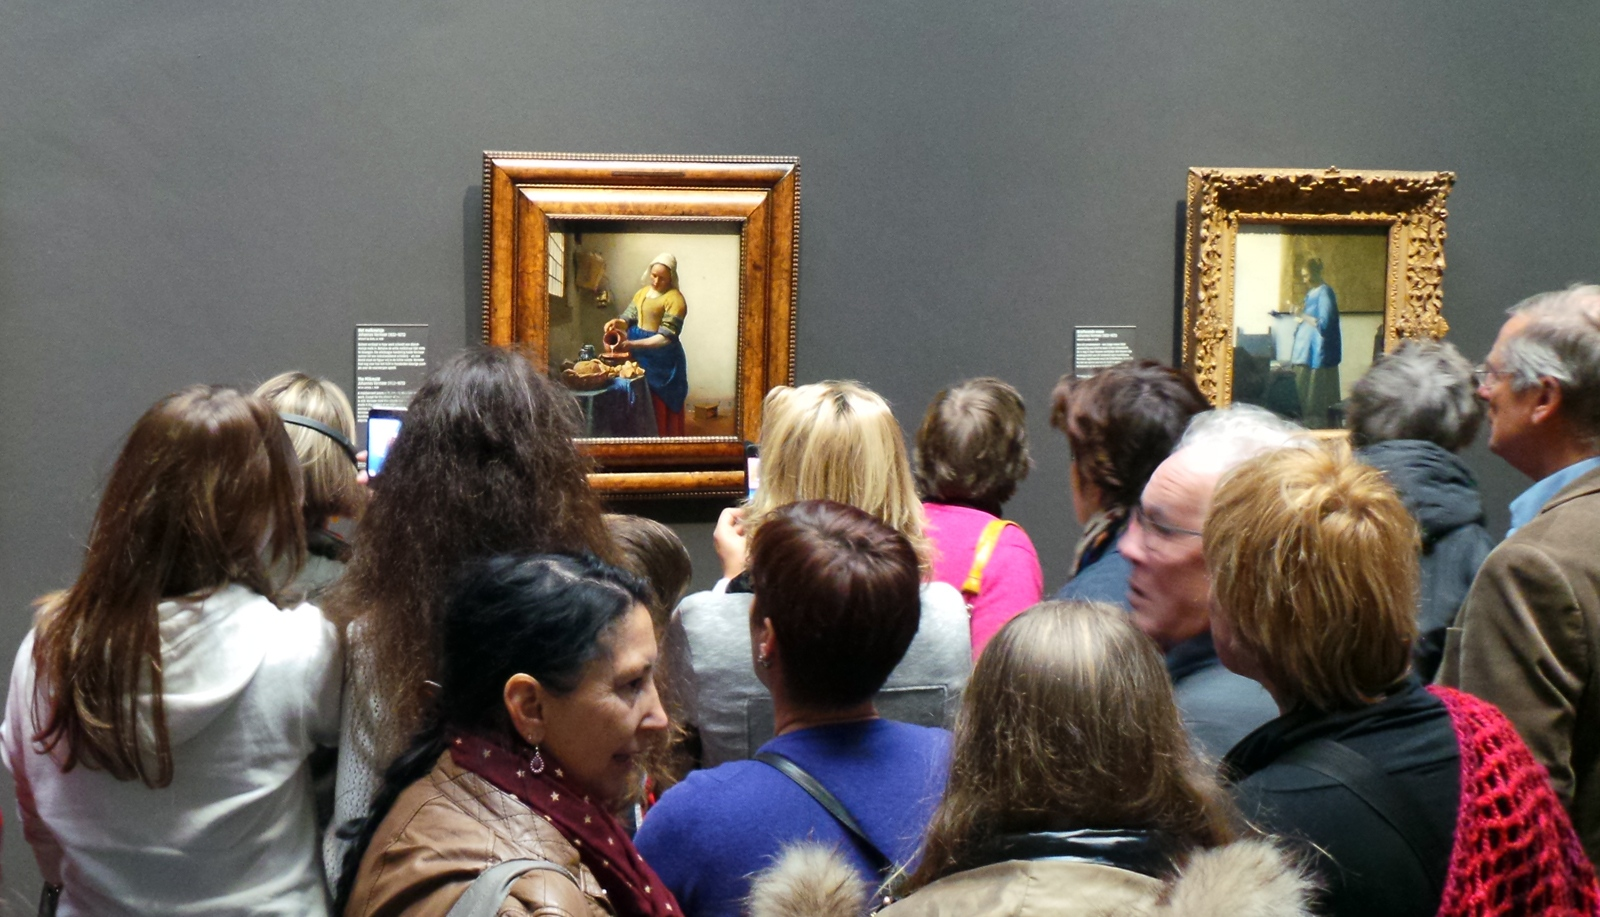 Crowds jostle for a look at Vermeer's The Milkmaid at the Rijksmuseum.